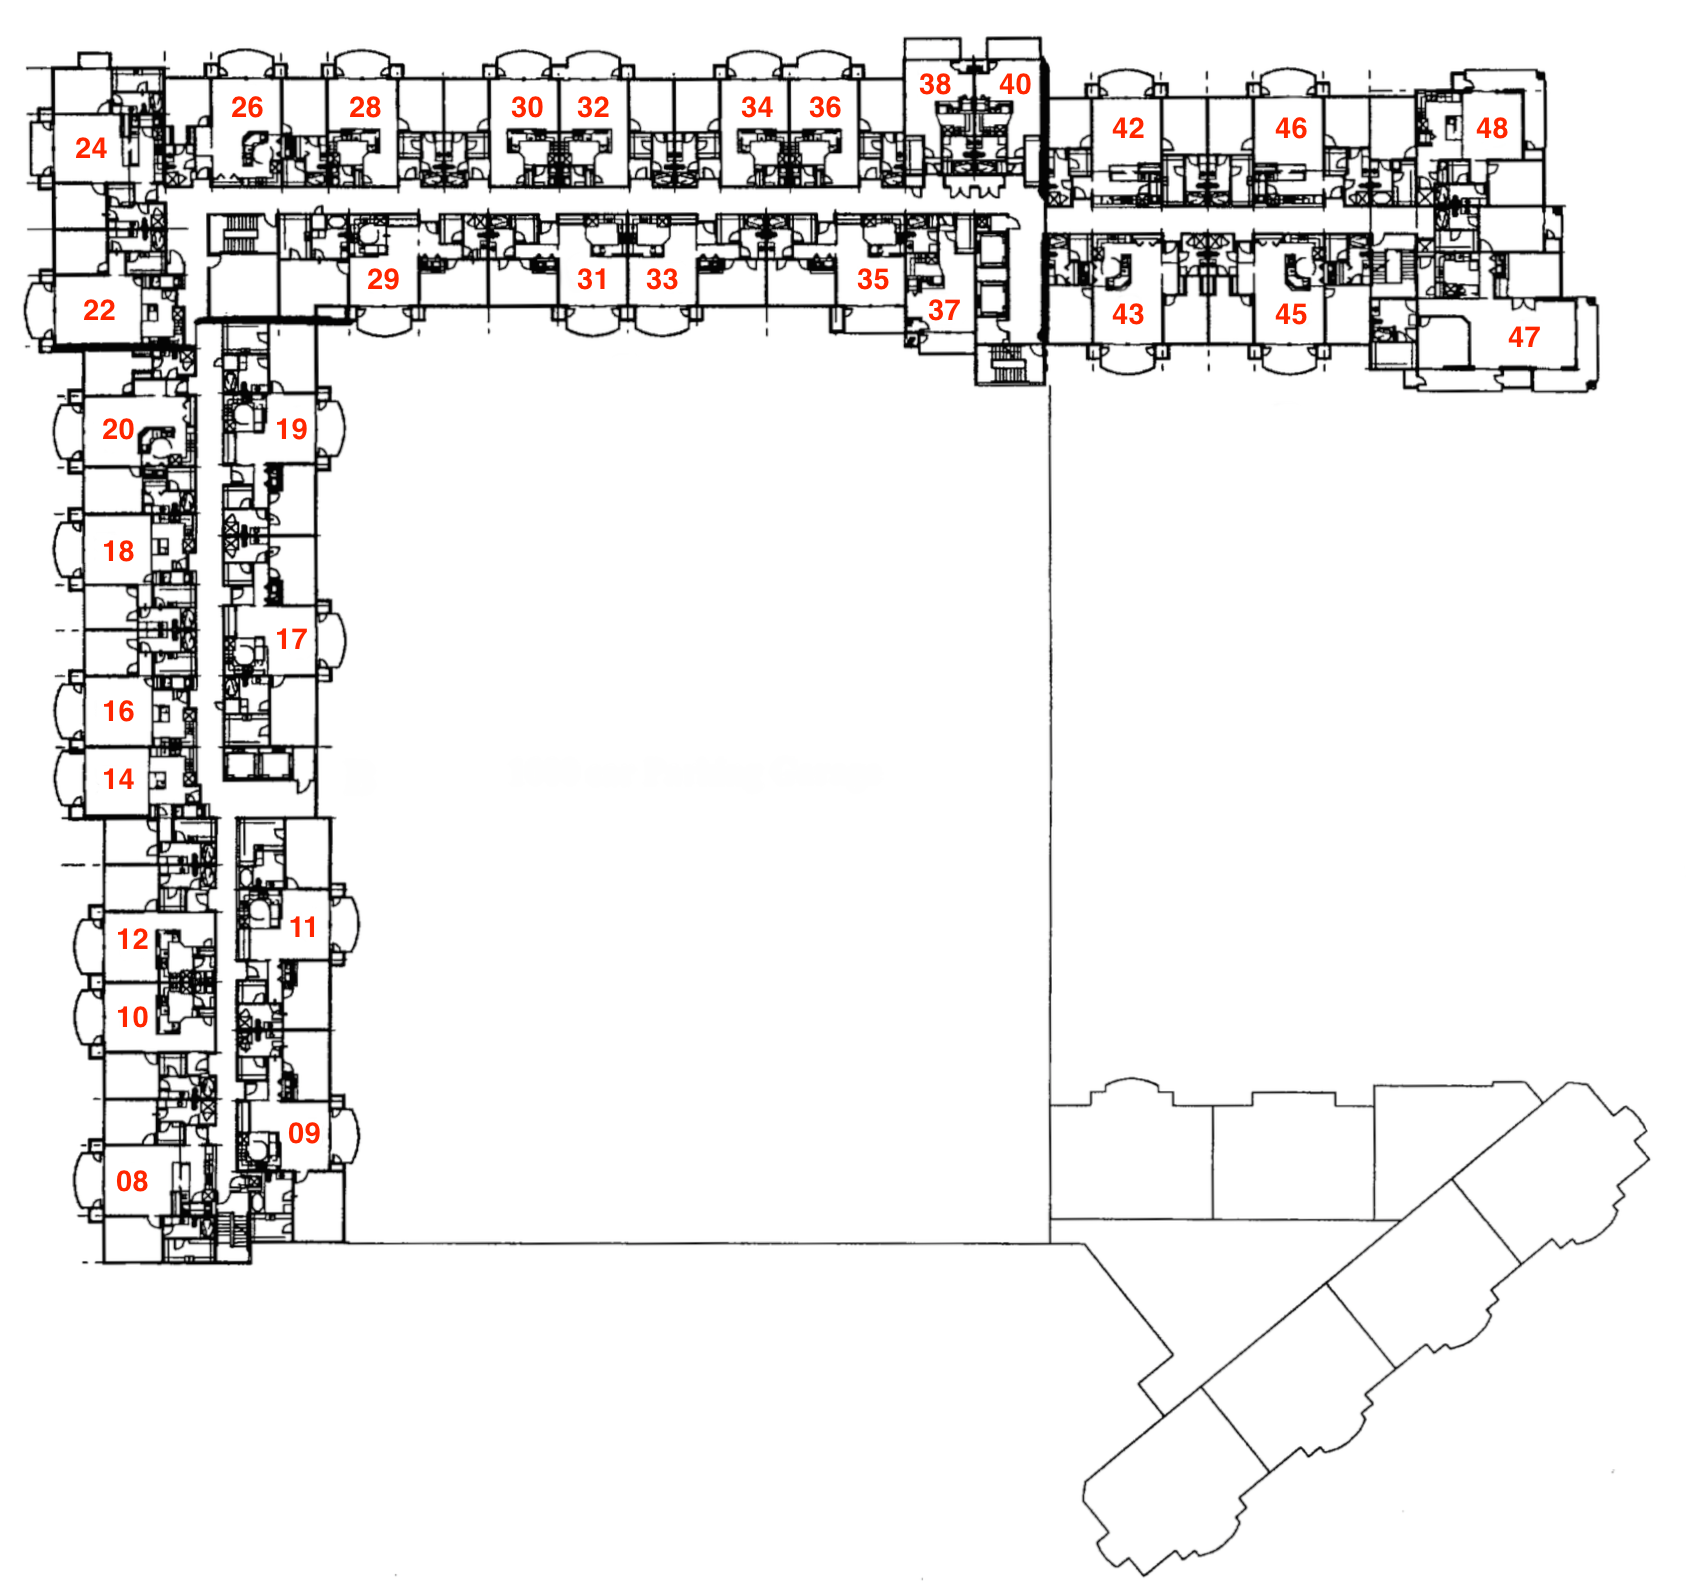 South / West Tower Typical Layout (Floors 1 - 15)